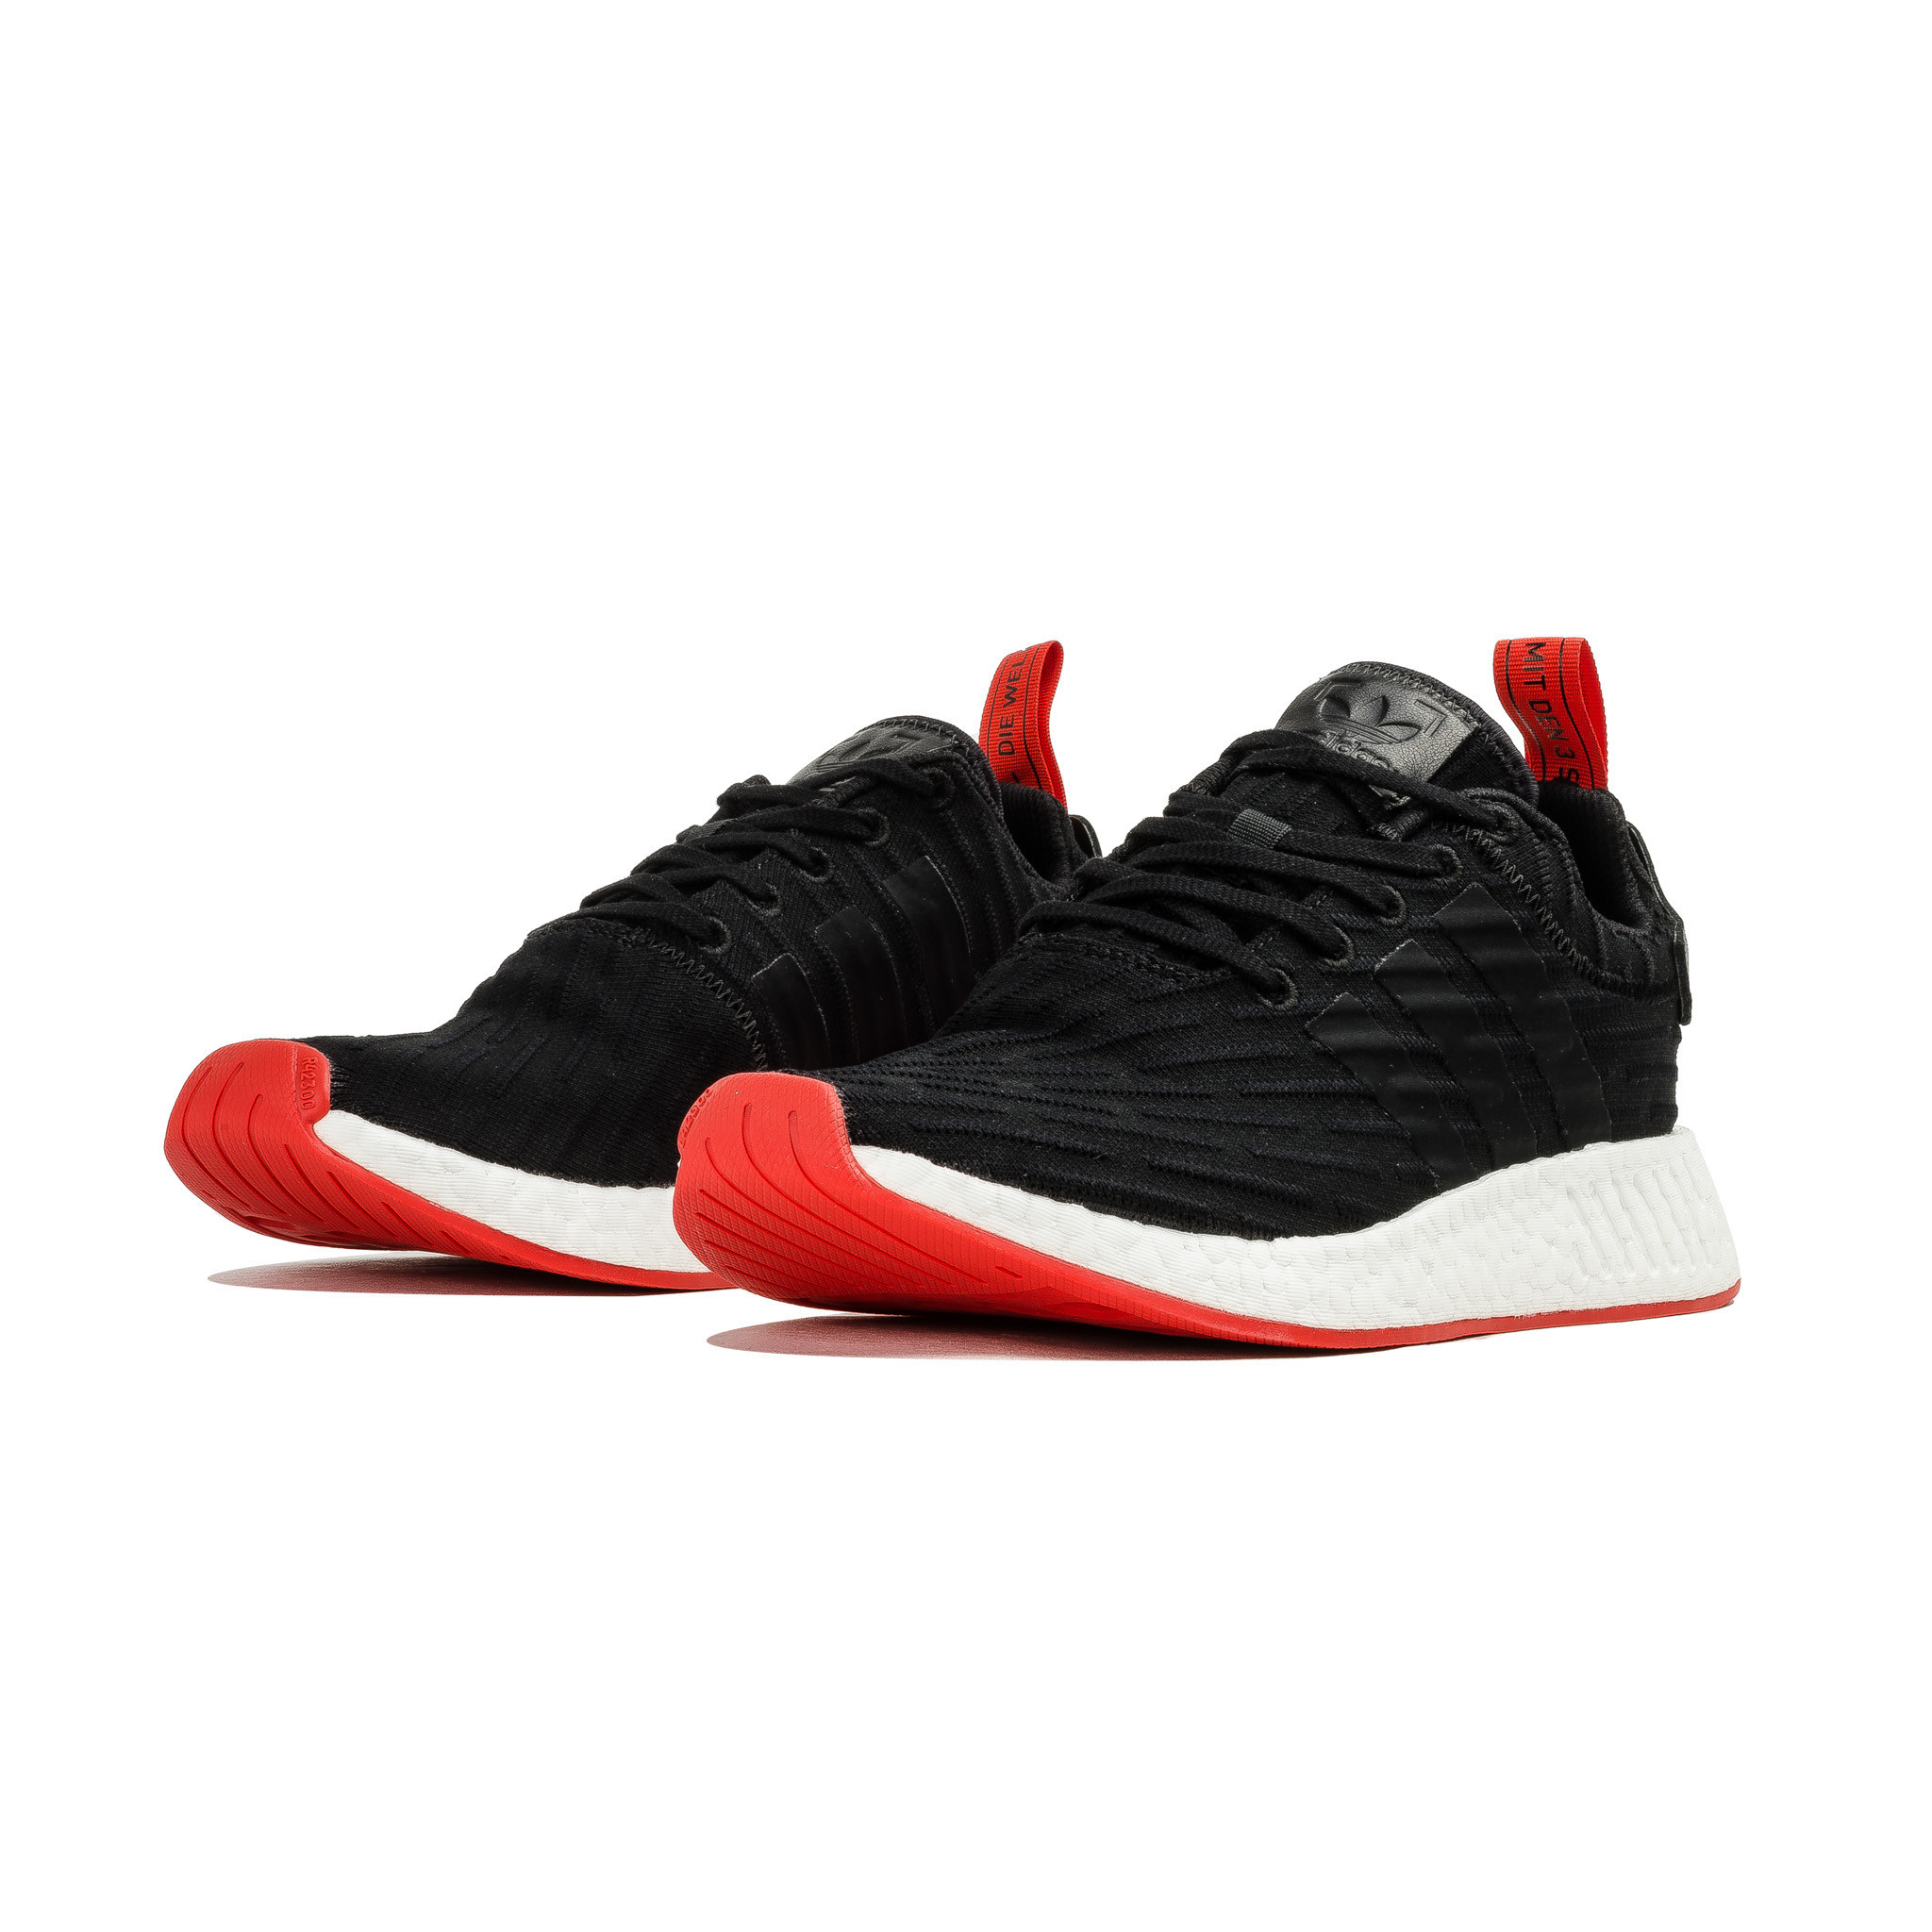 huge selection of 012a1 f5554 Adidas NMD R2